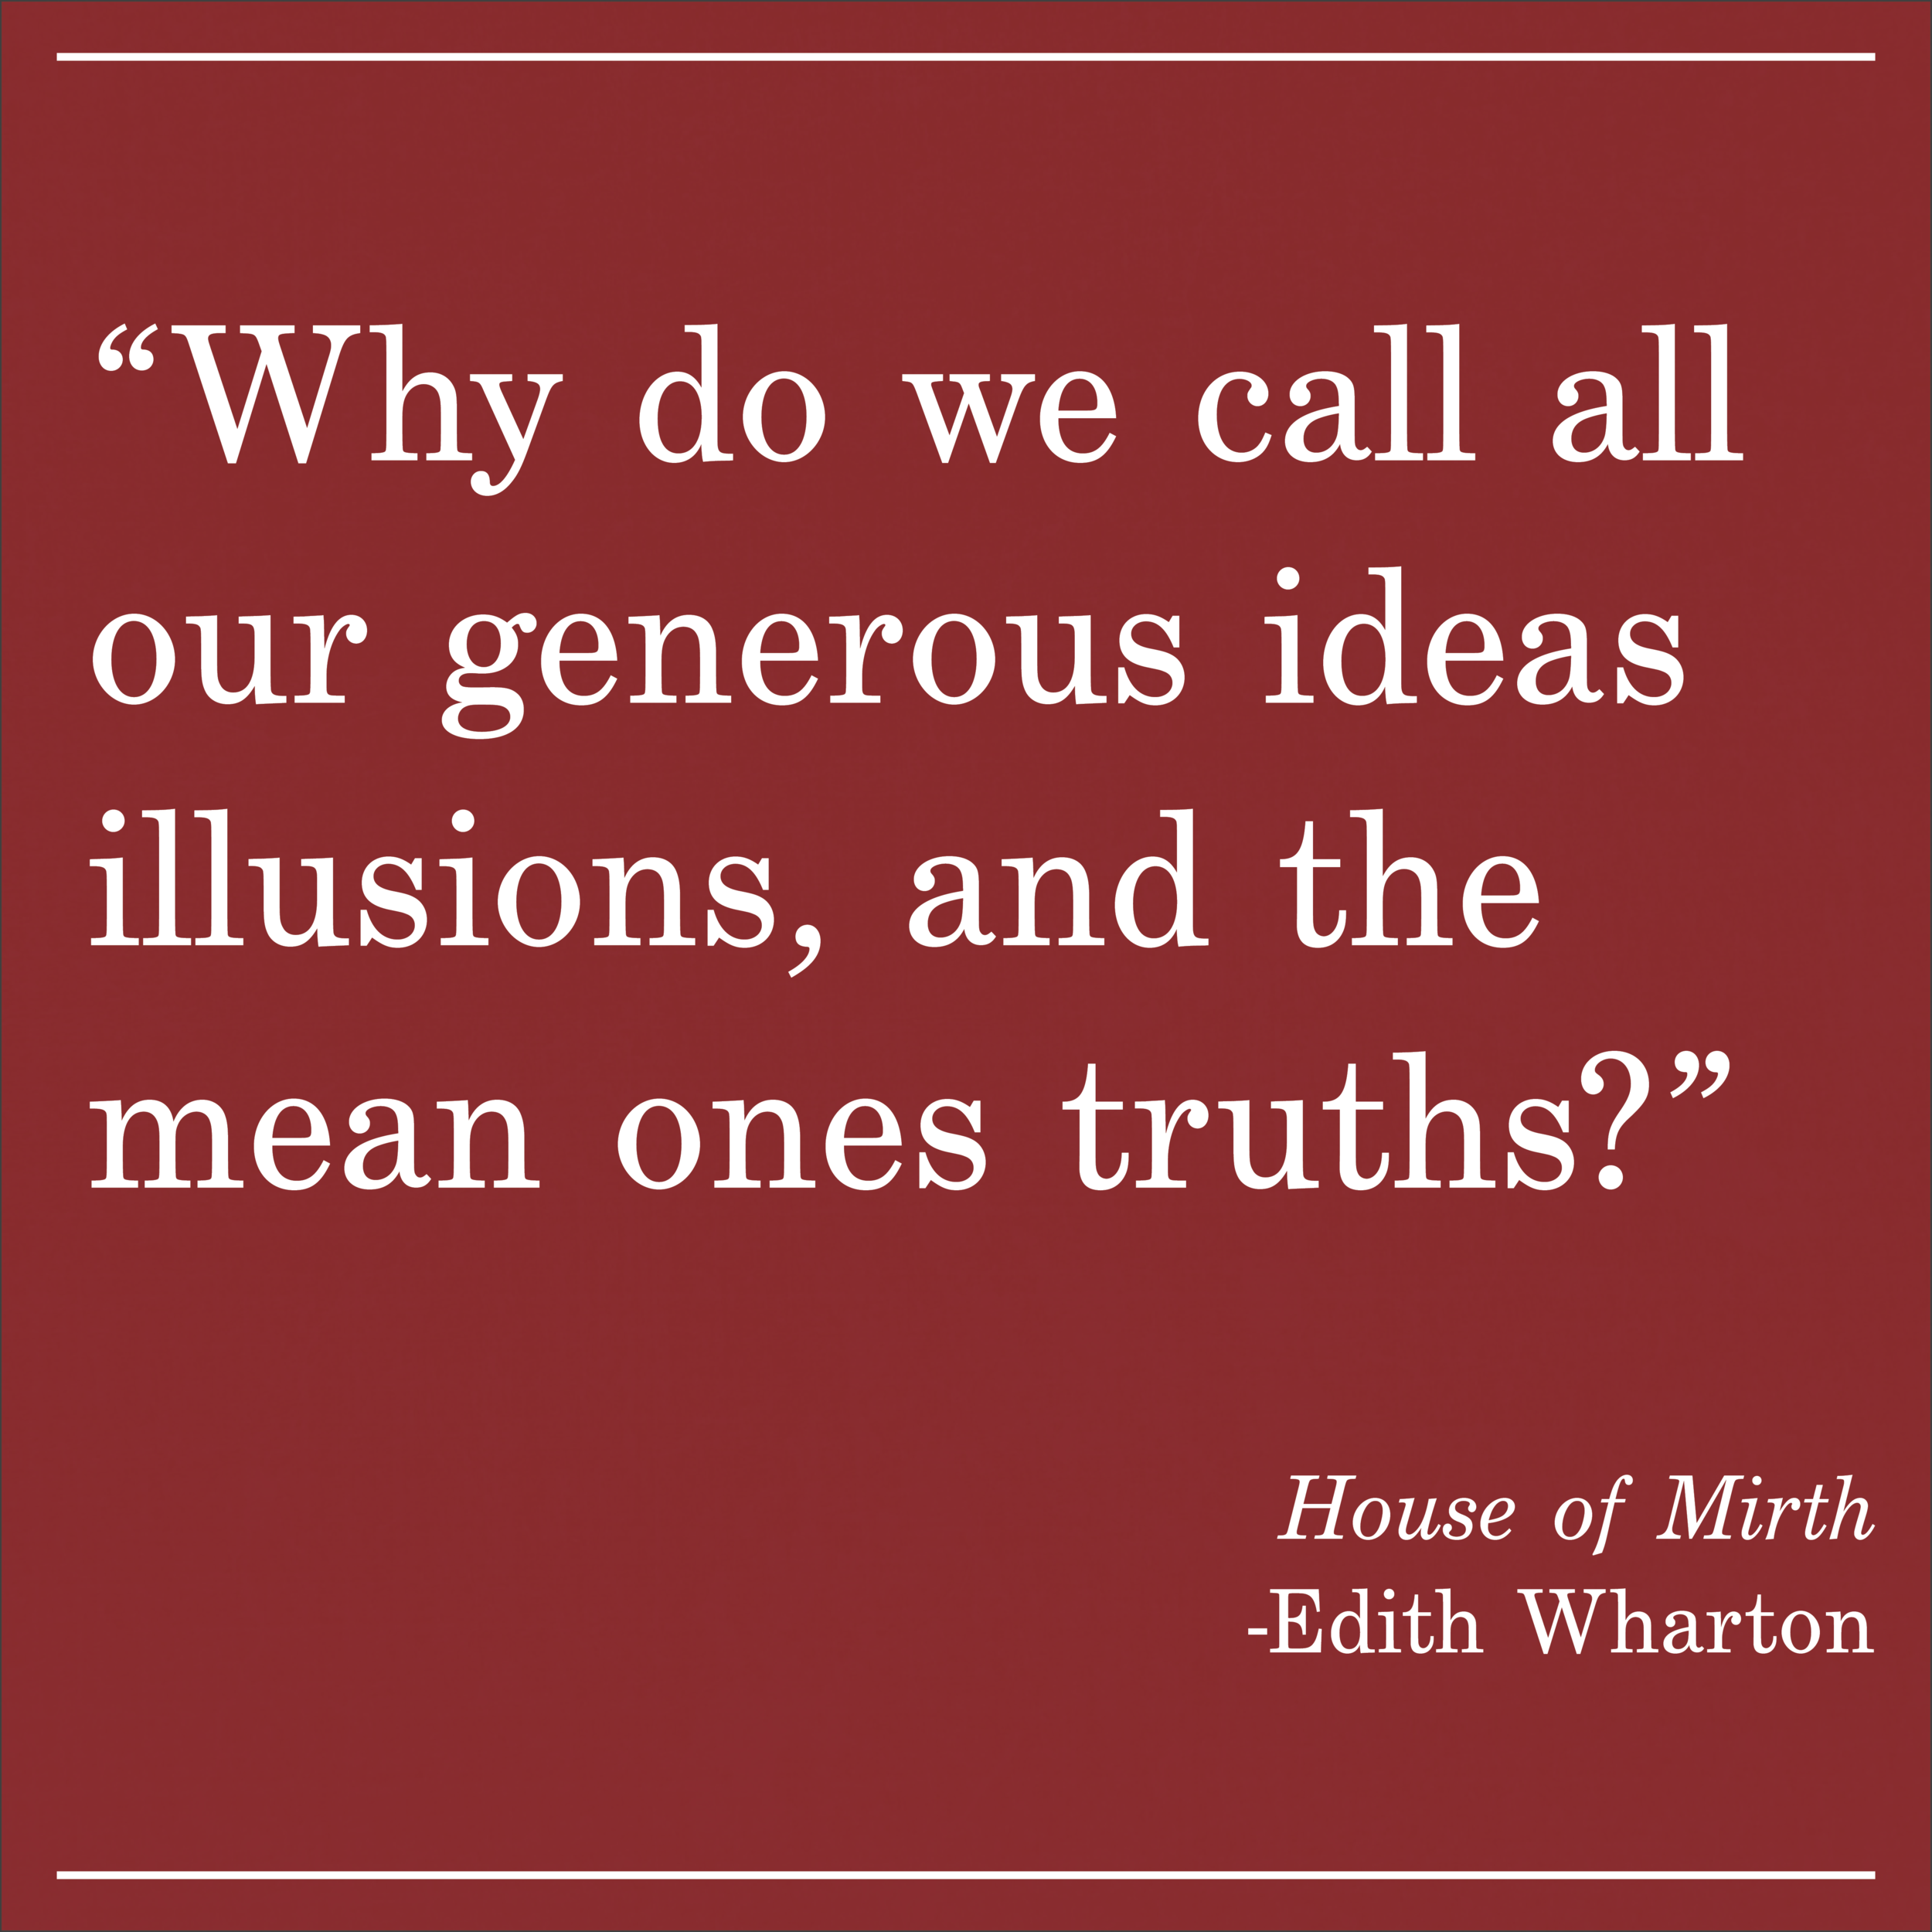 Daily Quote The House of Mirth by Edith Wharton